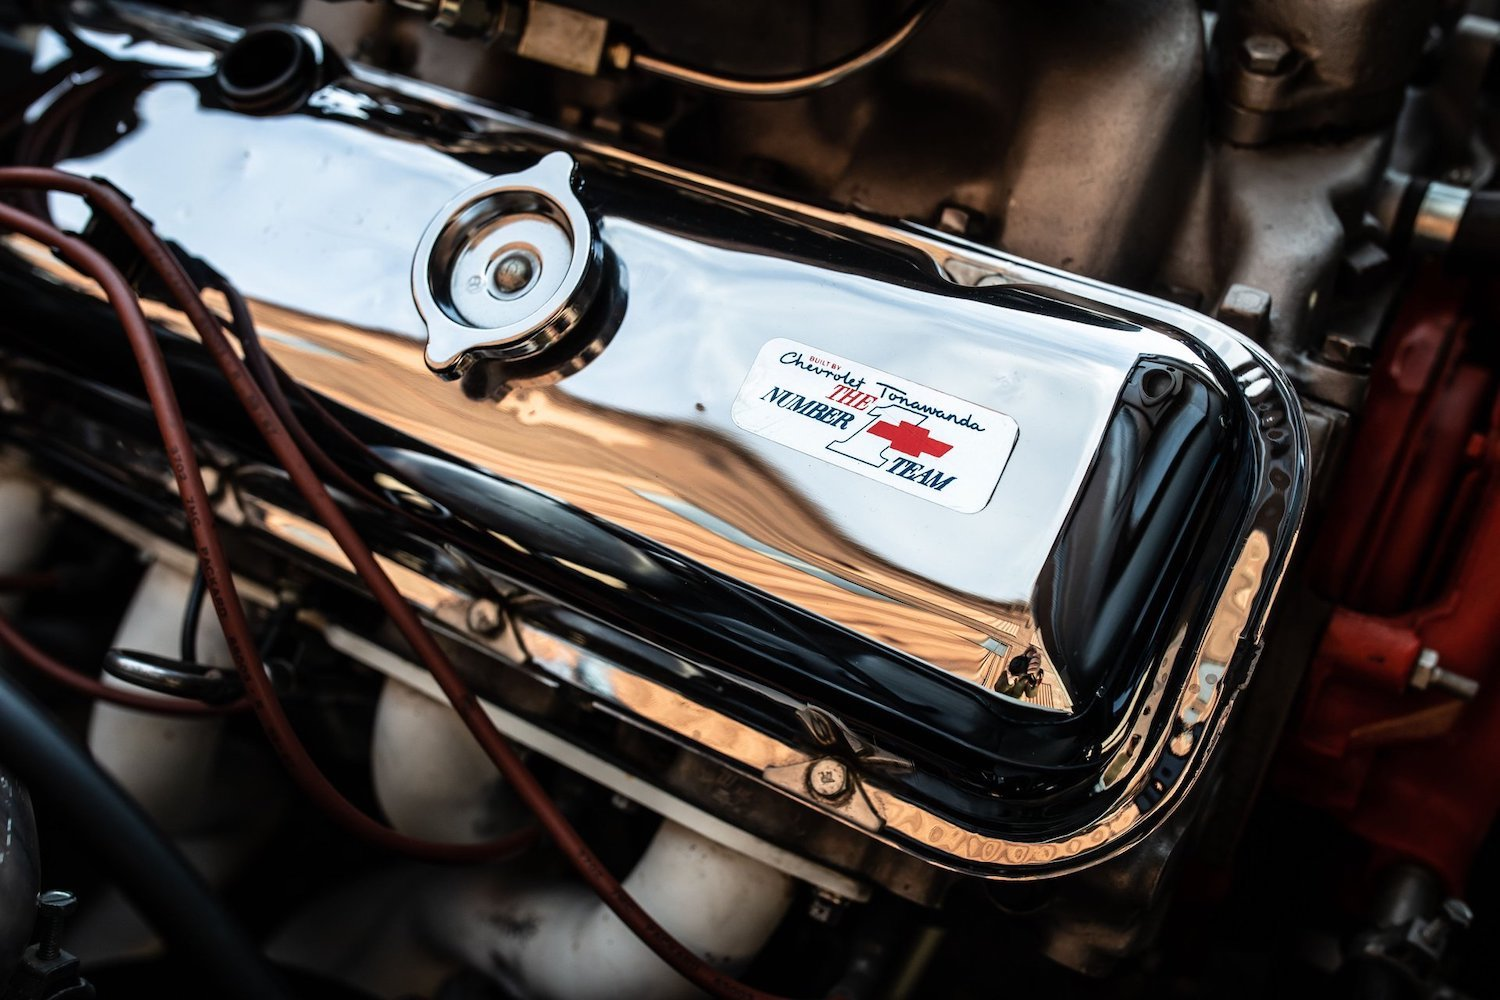 1968 Chevrolet Sunray DX L88 Yenko Racer valve covers